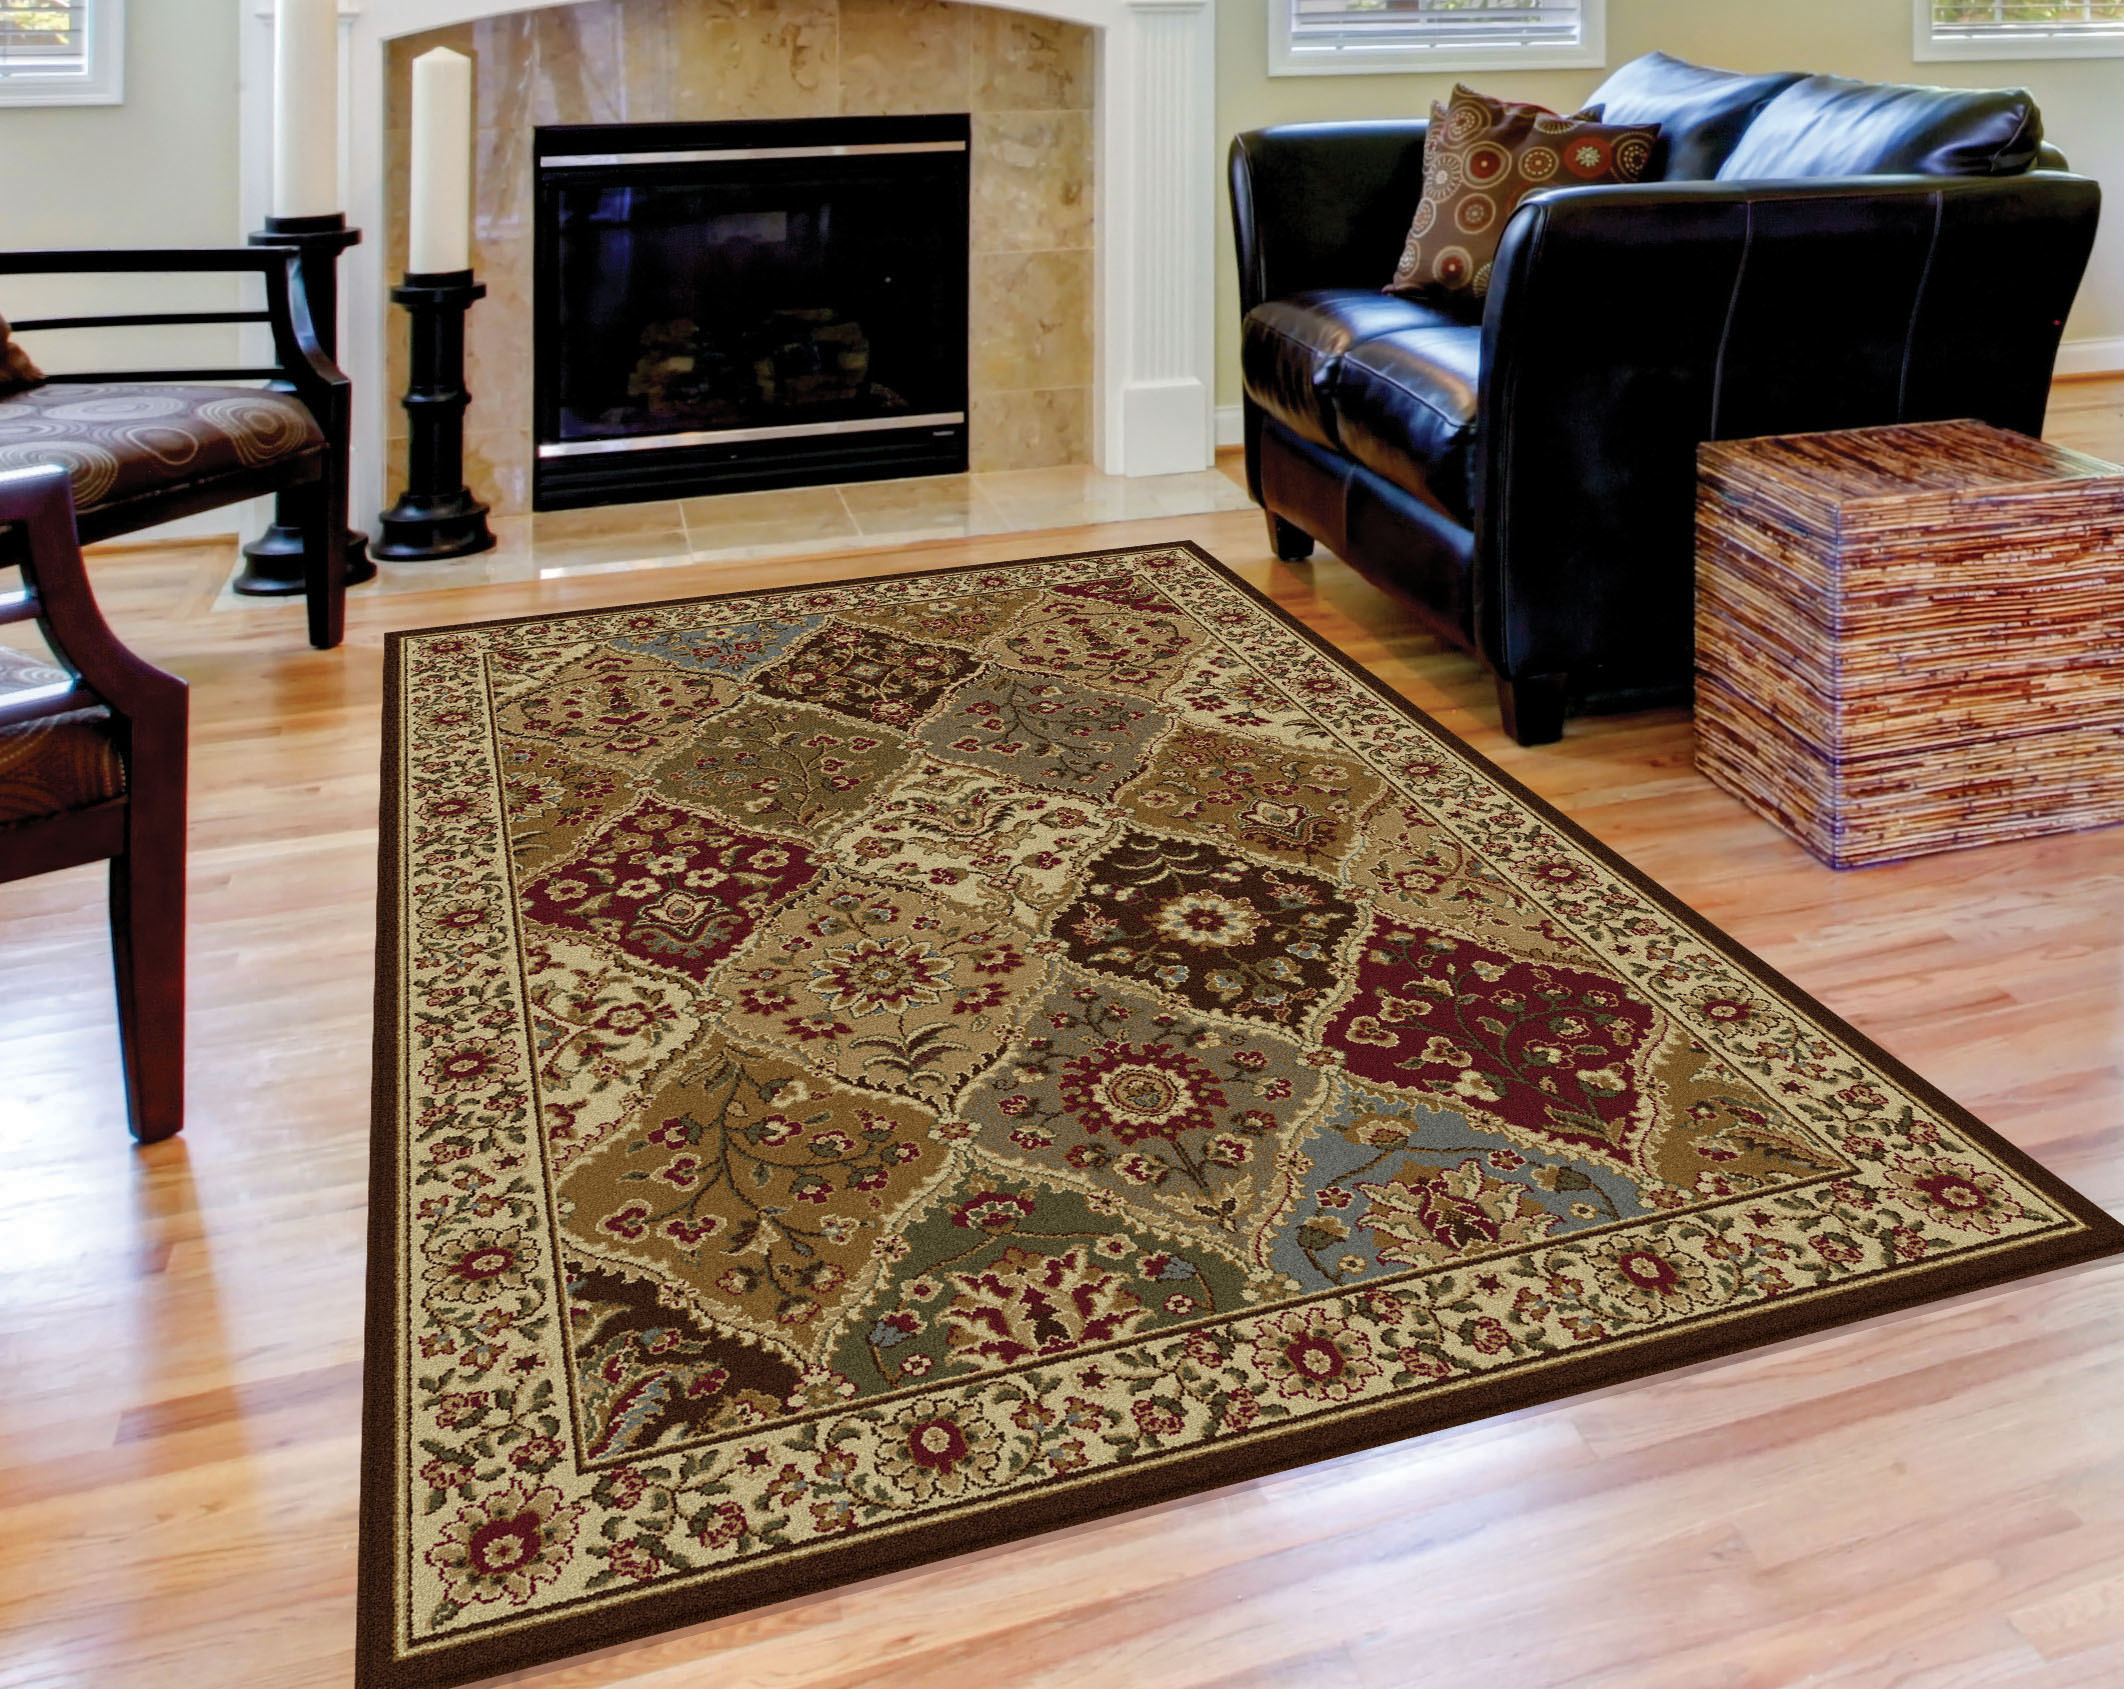 Tayse Rugs Elegance Cambridge Multi Traditional Area Rug 3 pc. Set